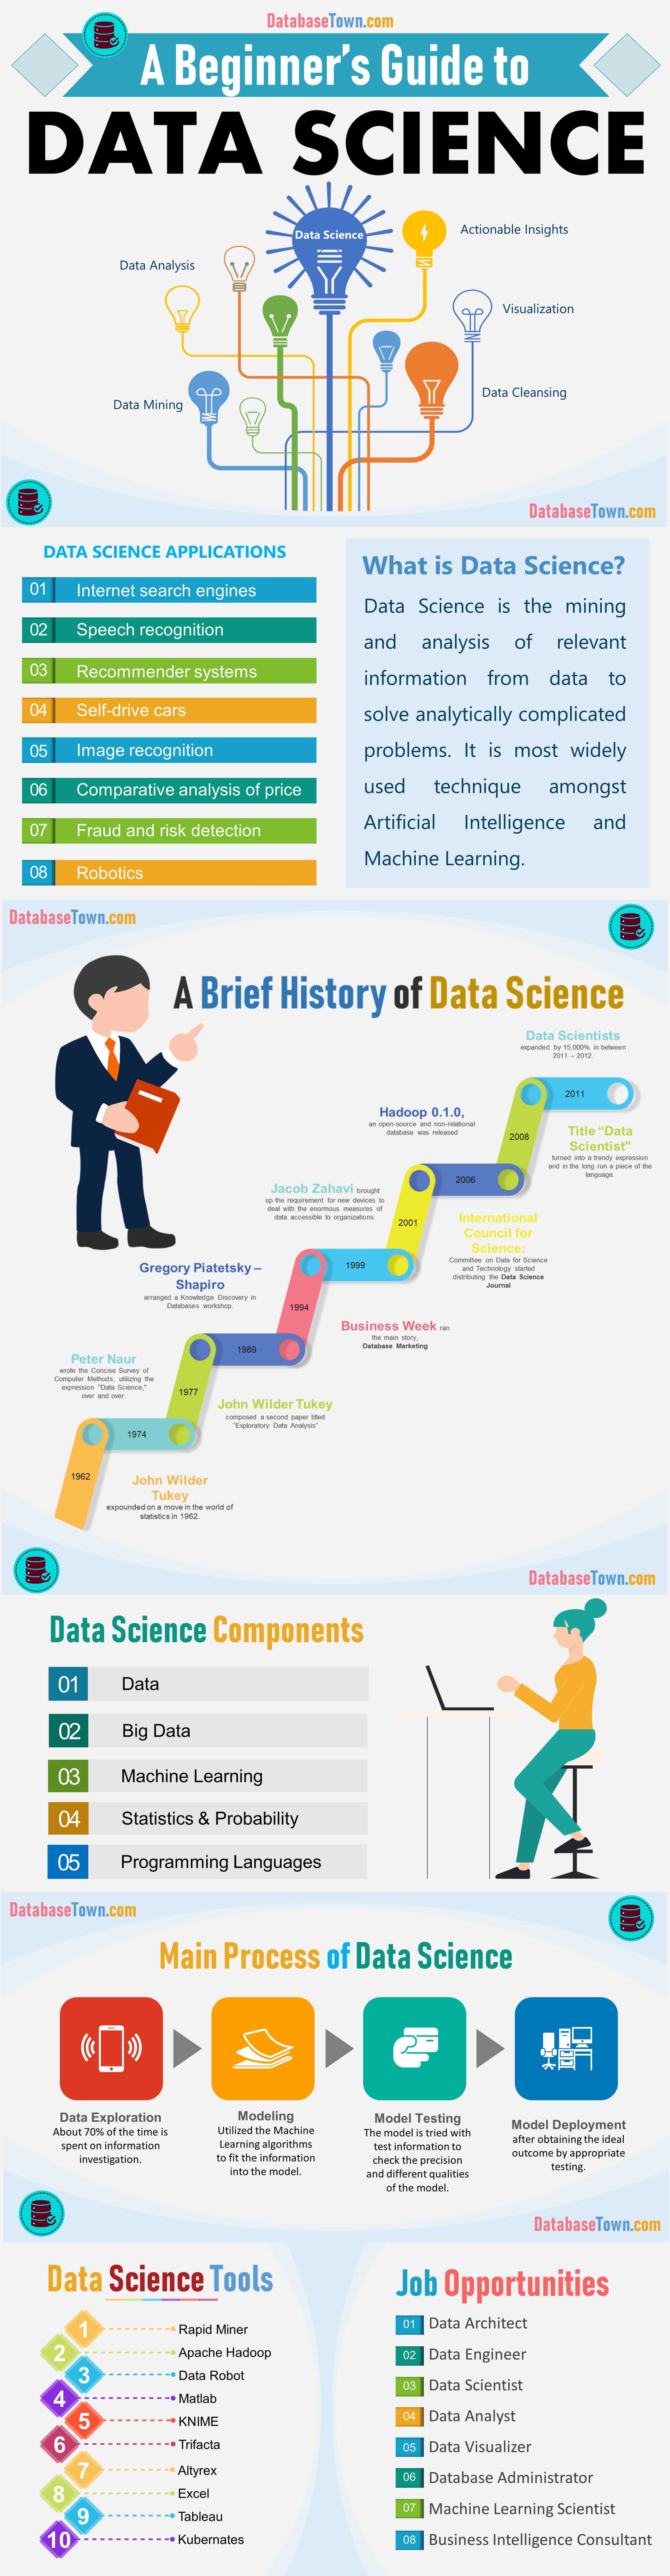 Introduction to Data Science| A Beginner's Guide (infographic)